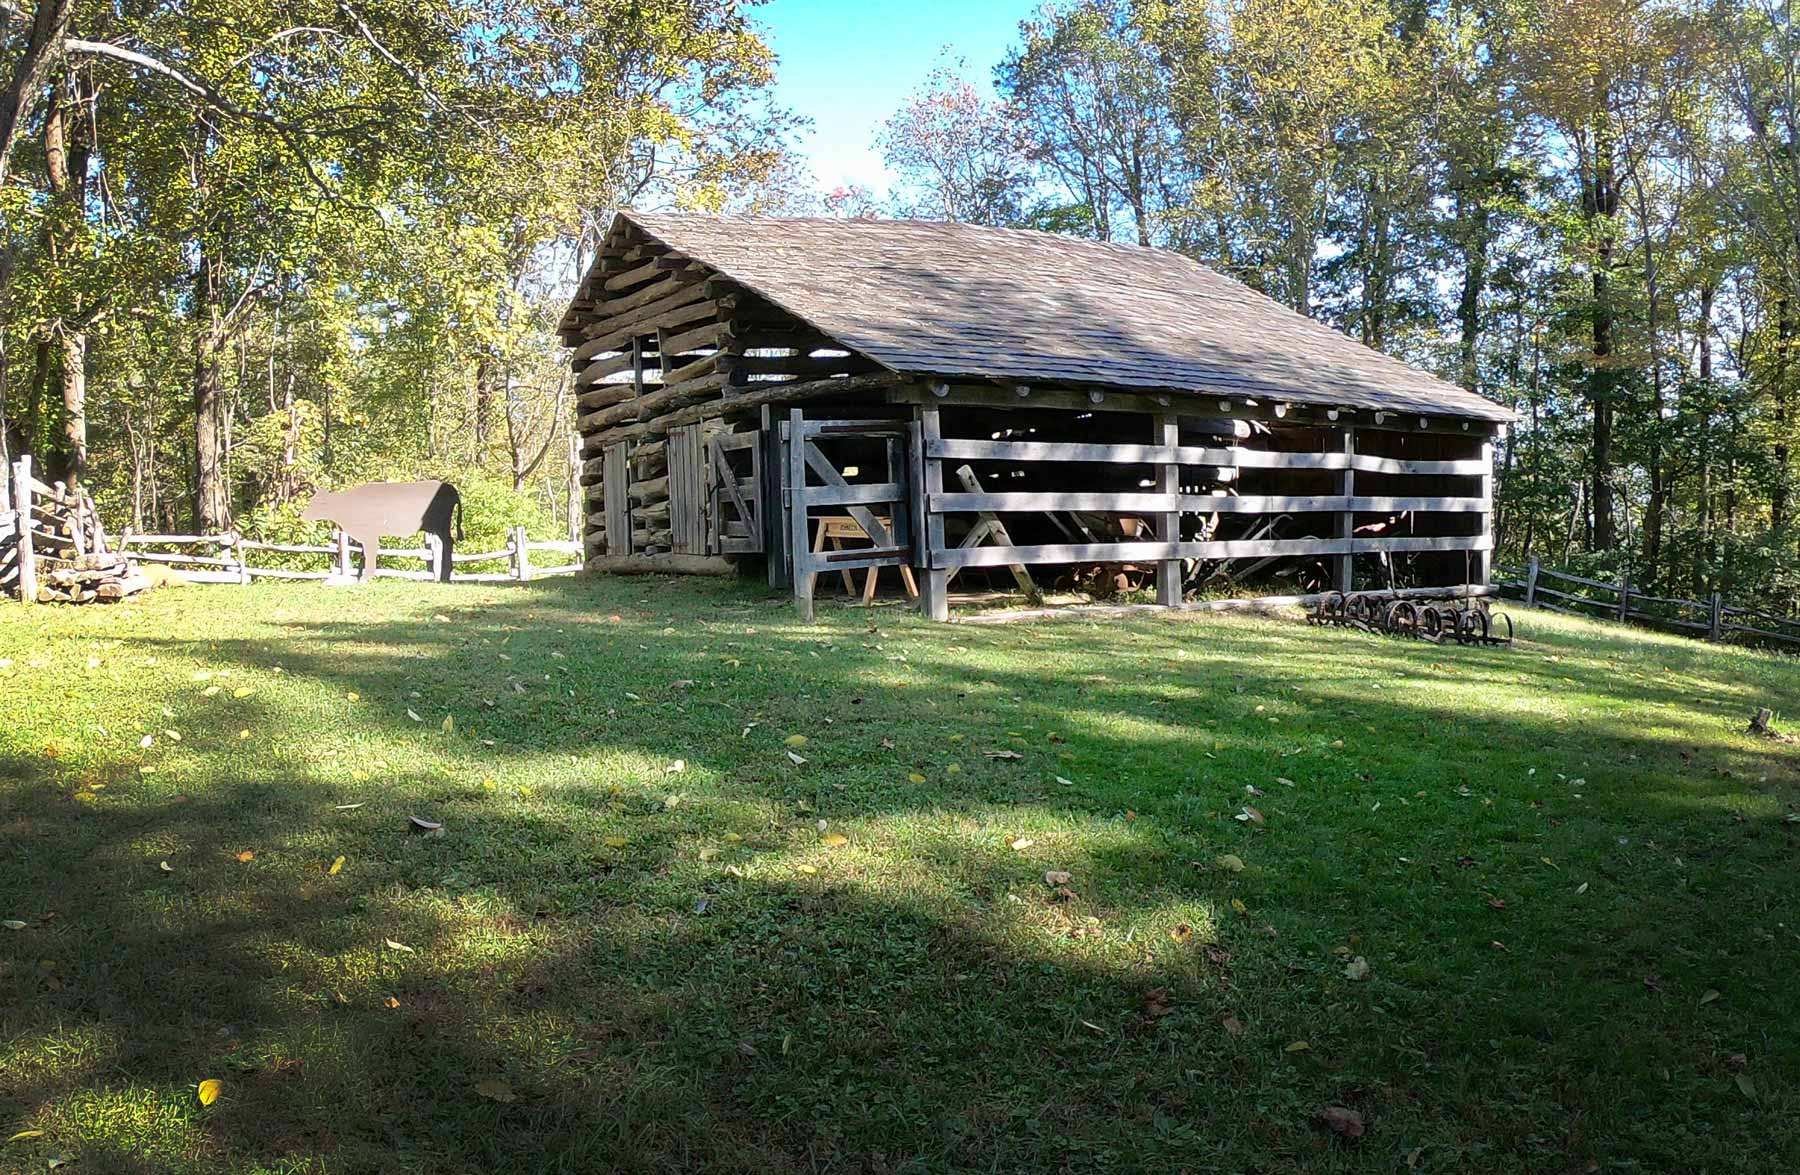 Mountain farm building on the Johnson Farm Loop Trail at Peaks of Otter, Virginia